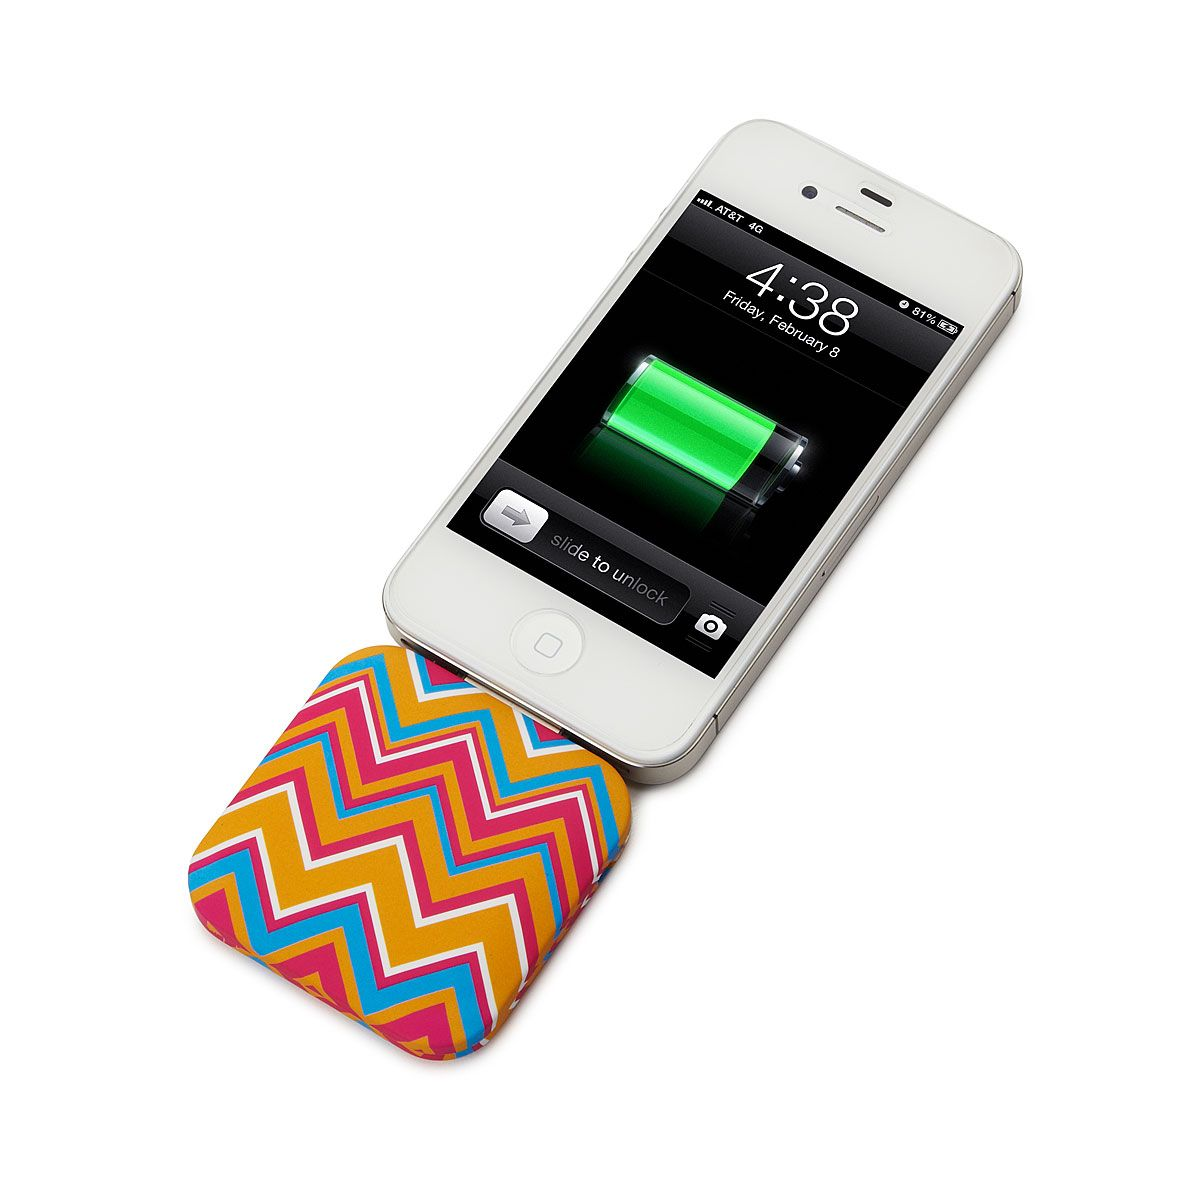 portable iphone charger portable iphone charger ipod. Black Bedroom Furniture Sets. Home Design Ideas